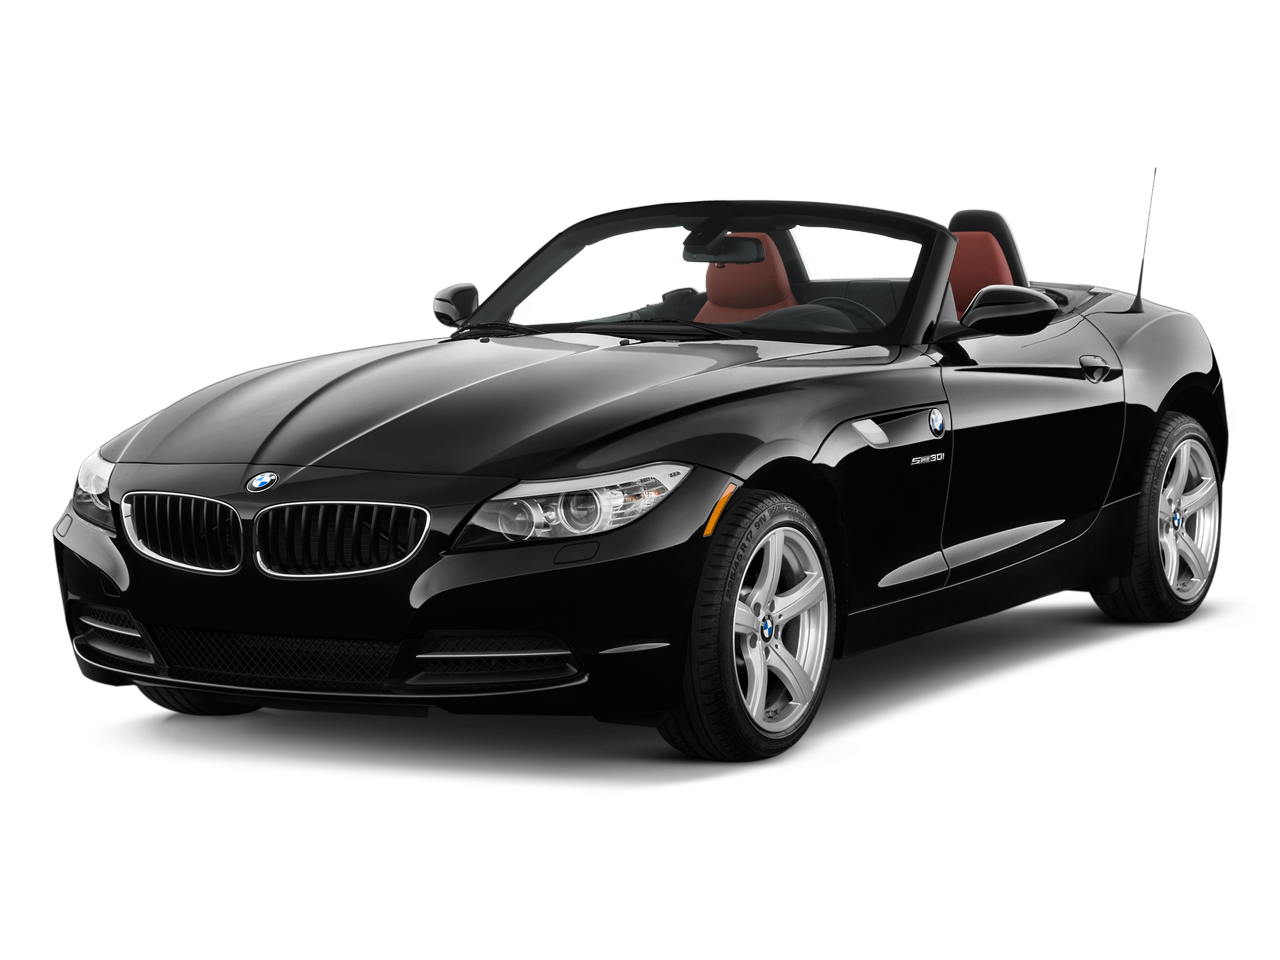 2009 bmw z4 bmw convertible coupe review automobile. Black Bedroom Furniture Sets. Home Design Ideas